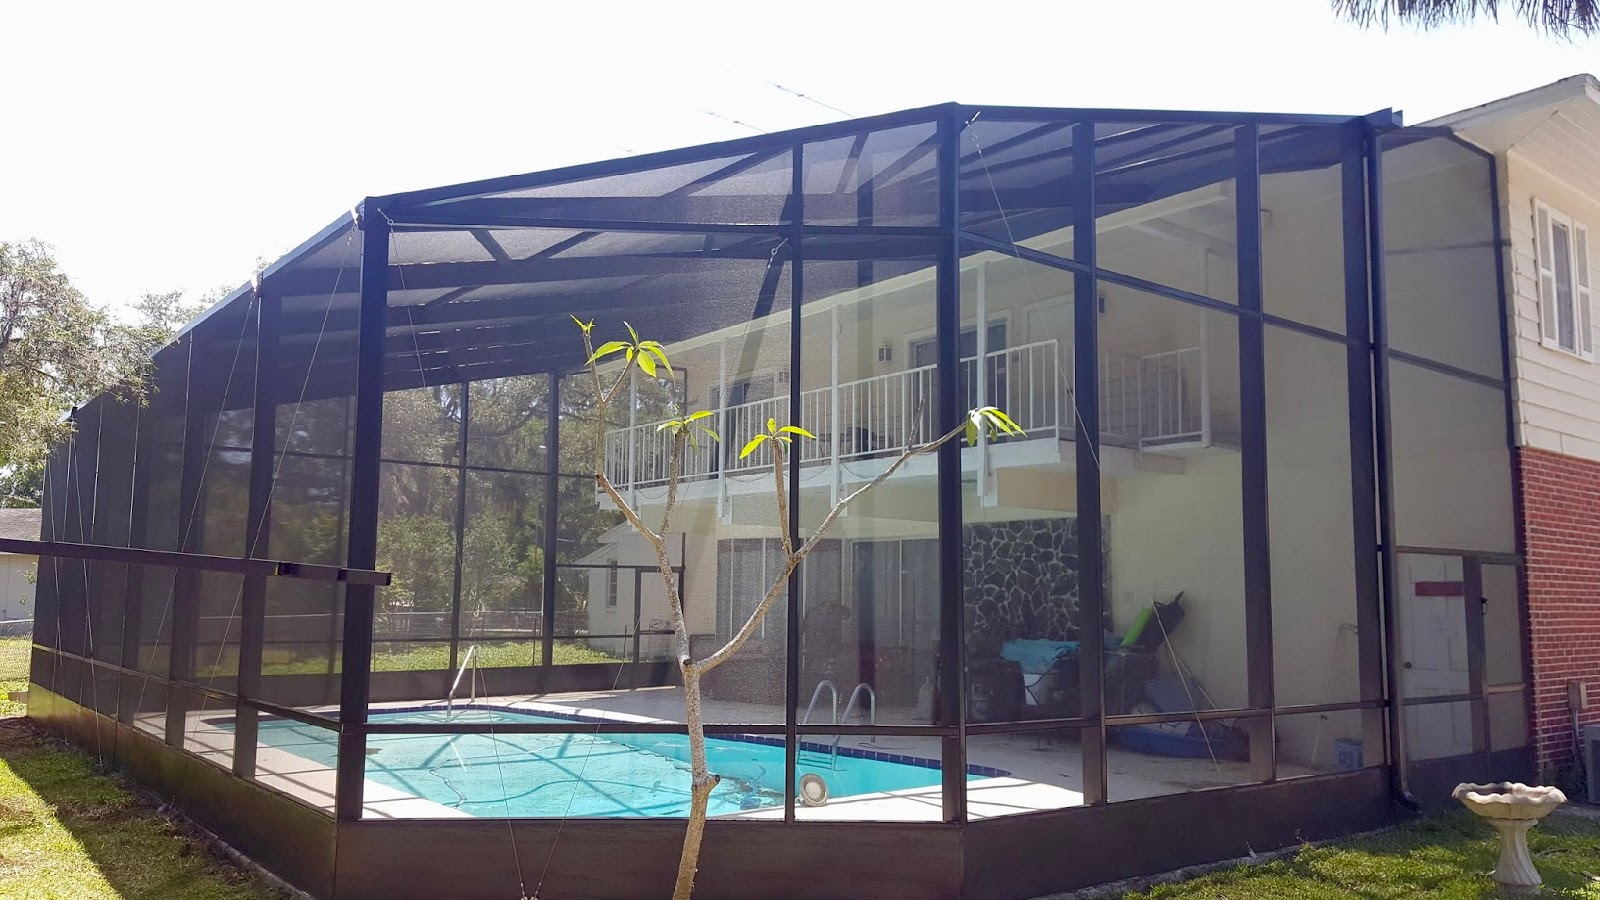 Screen Enclosures Pool Screen Rescreening Re Screening Restore Your Enclosure By Jack Hall Jr S Professional Permanent Installation New Port Richey Land O Lakes Fl 800 741 0068 Ask For Jack